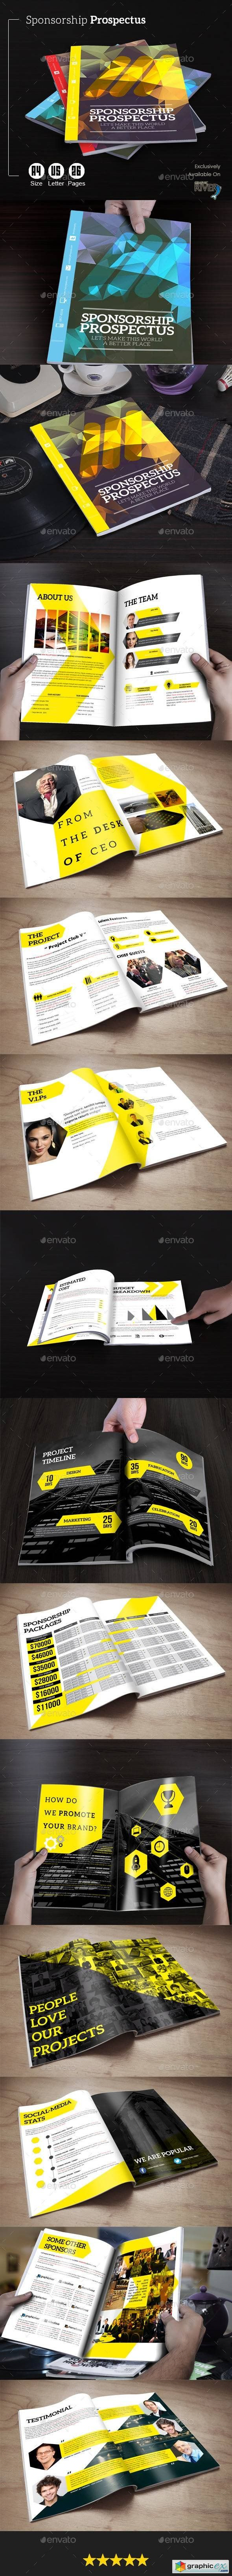 Buy Sponsorship Prospectus by Brandacy on GraphicRiver